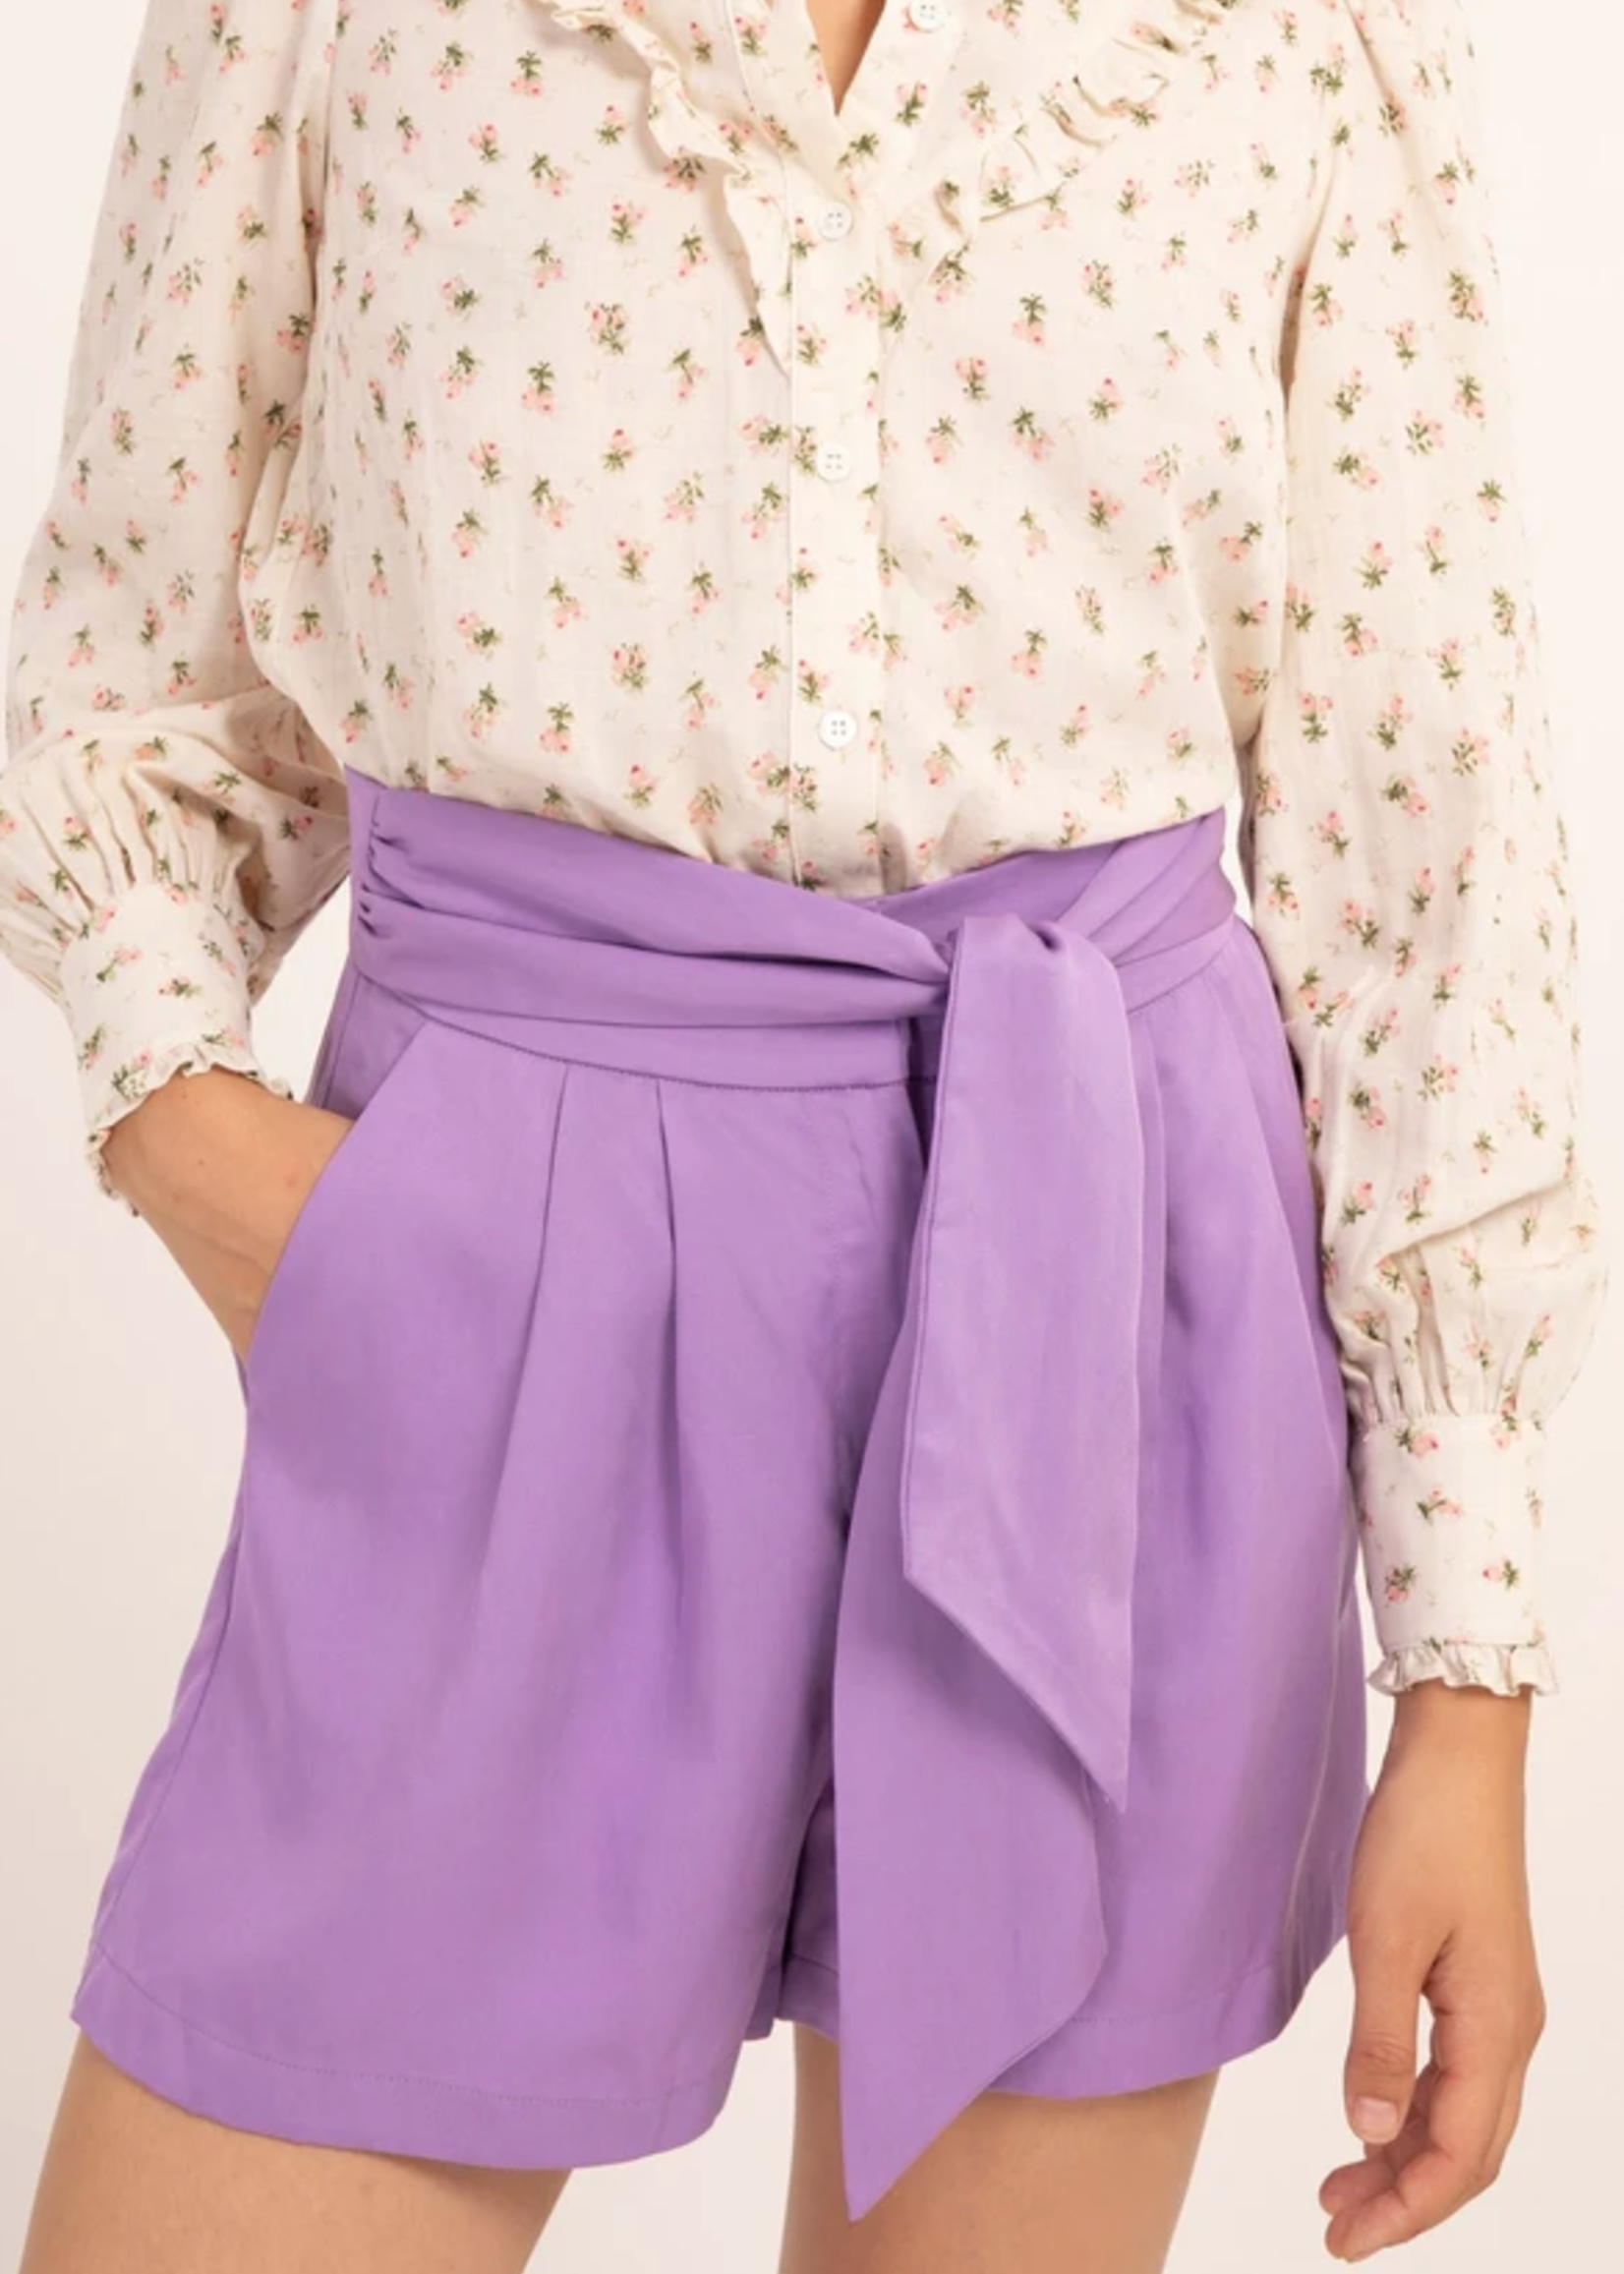 Elitaire Boutique Davina Lilac Shorts